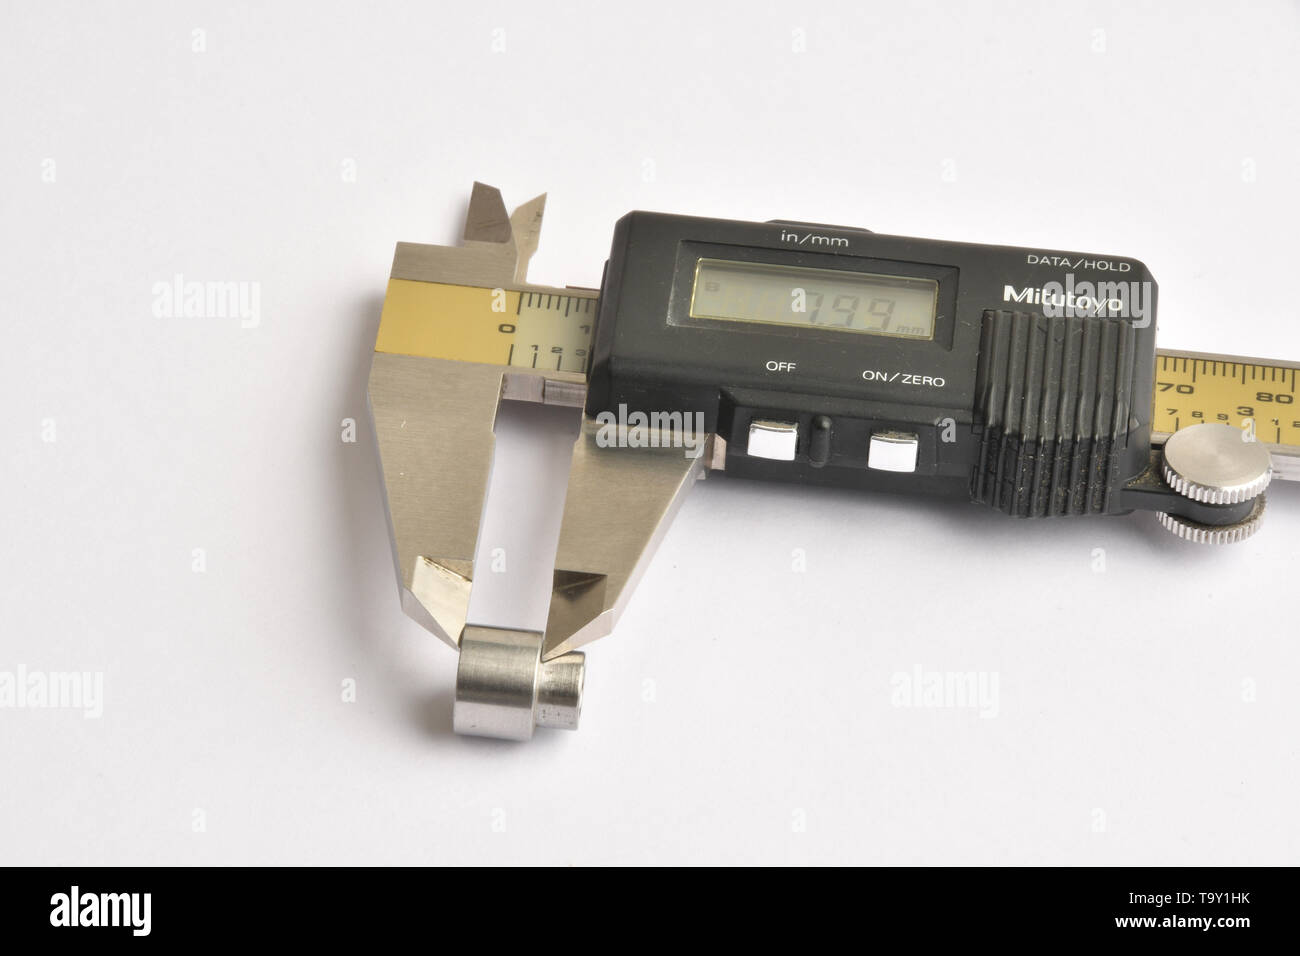 Digital vernier caliper measuring the length of a turned component. - Stock Image